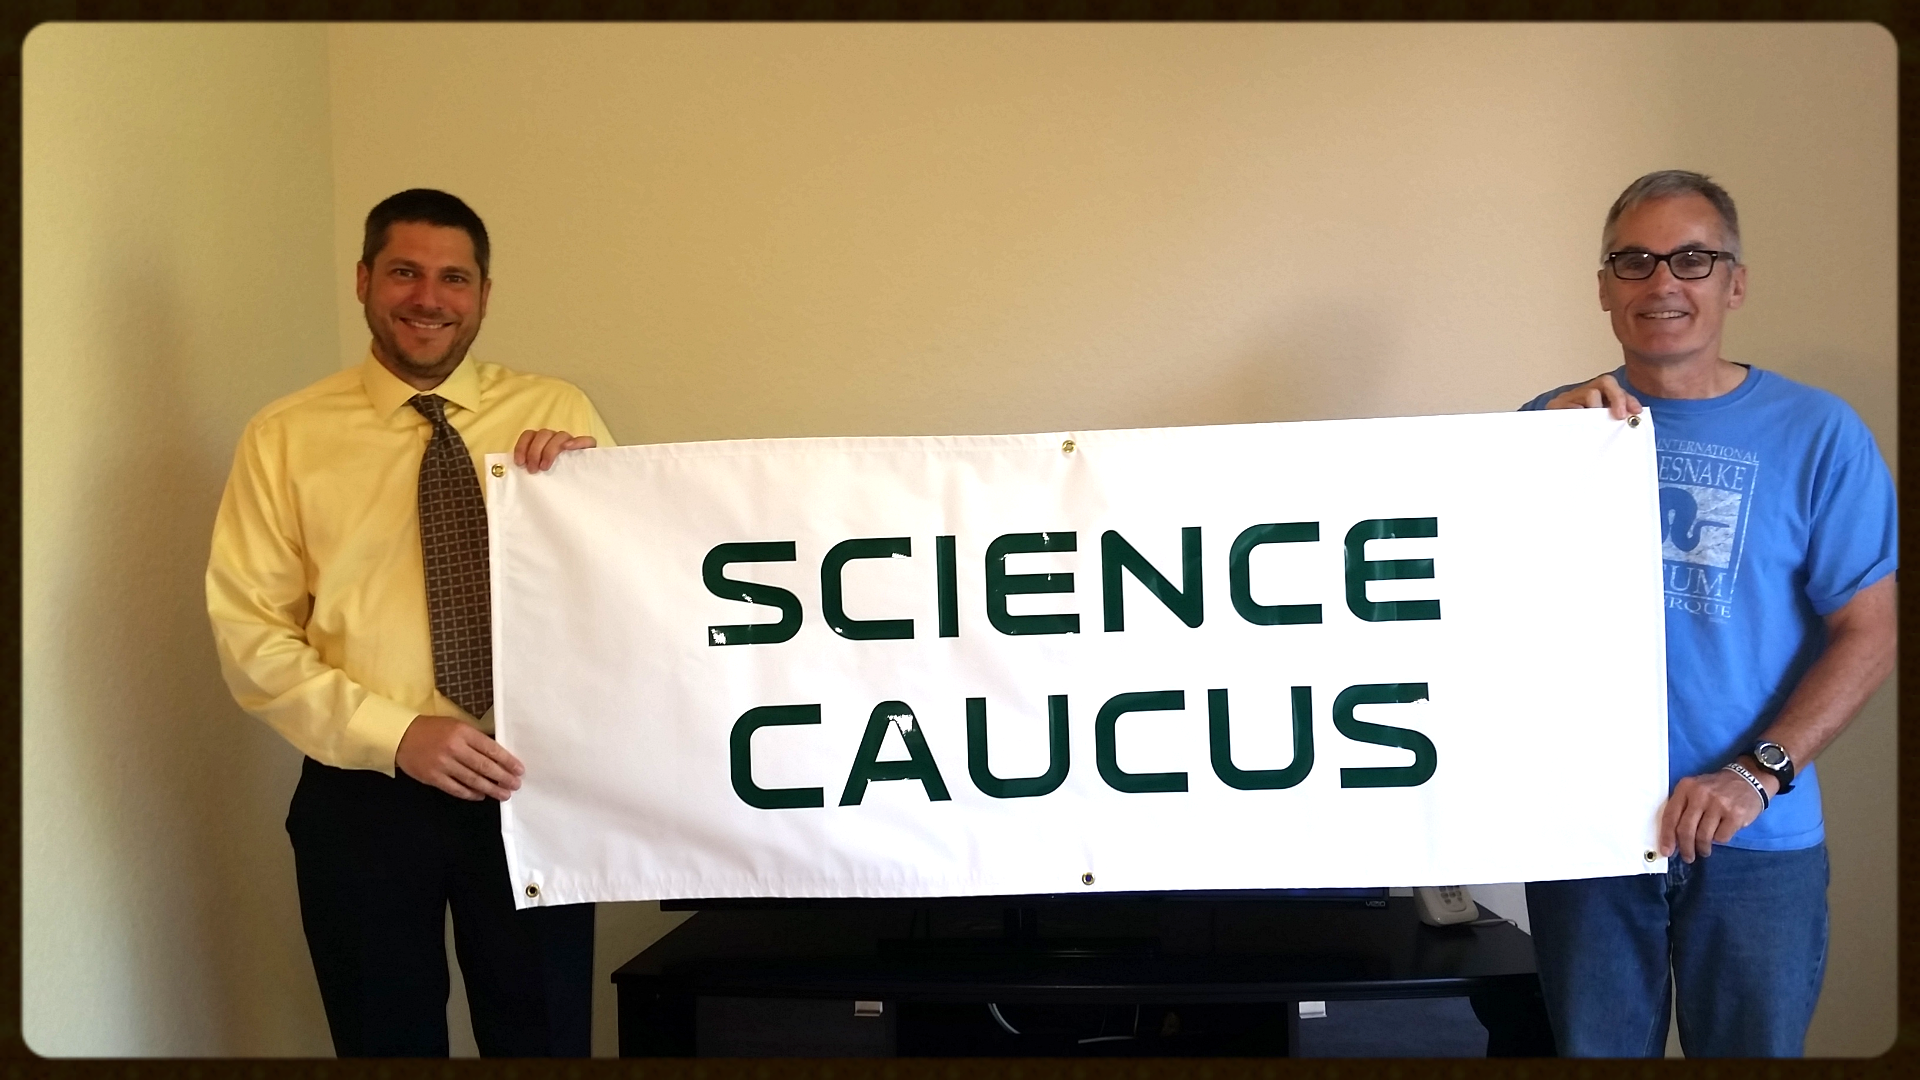 Science Caucus Orlando 2015